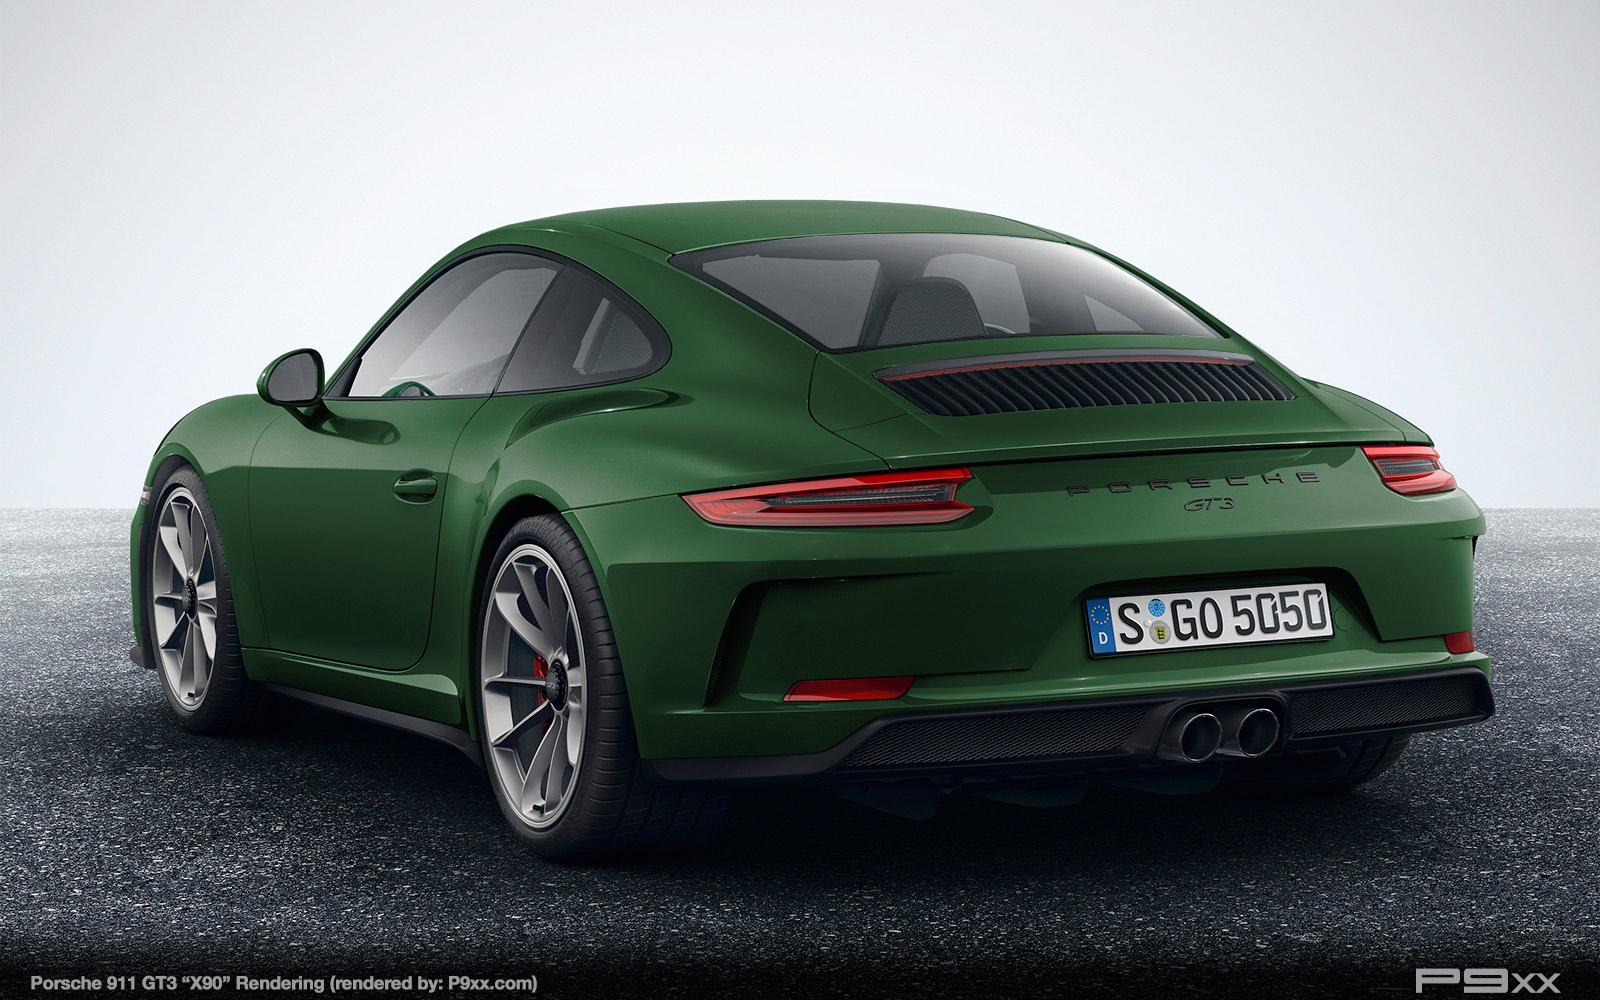 Porsche 911 gt3 rs review 2017 autocar - The X90 Rumor Stems From A June 2017 Issue Of Autocar Magazine Where The Car Is Described As Utilizing The Same Body Kit As The 911 R The Drivetrain Of